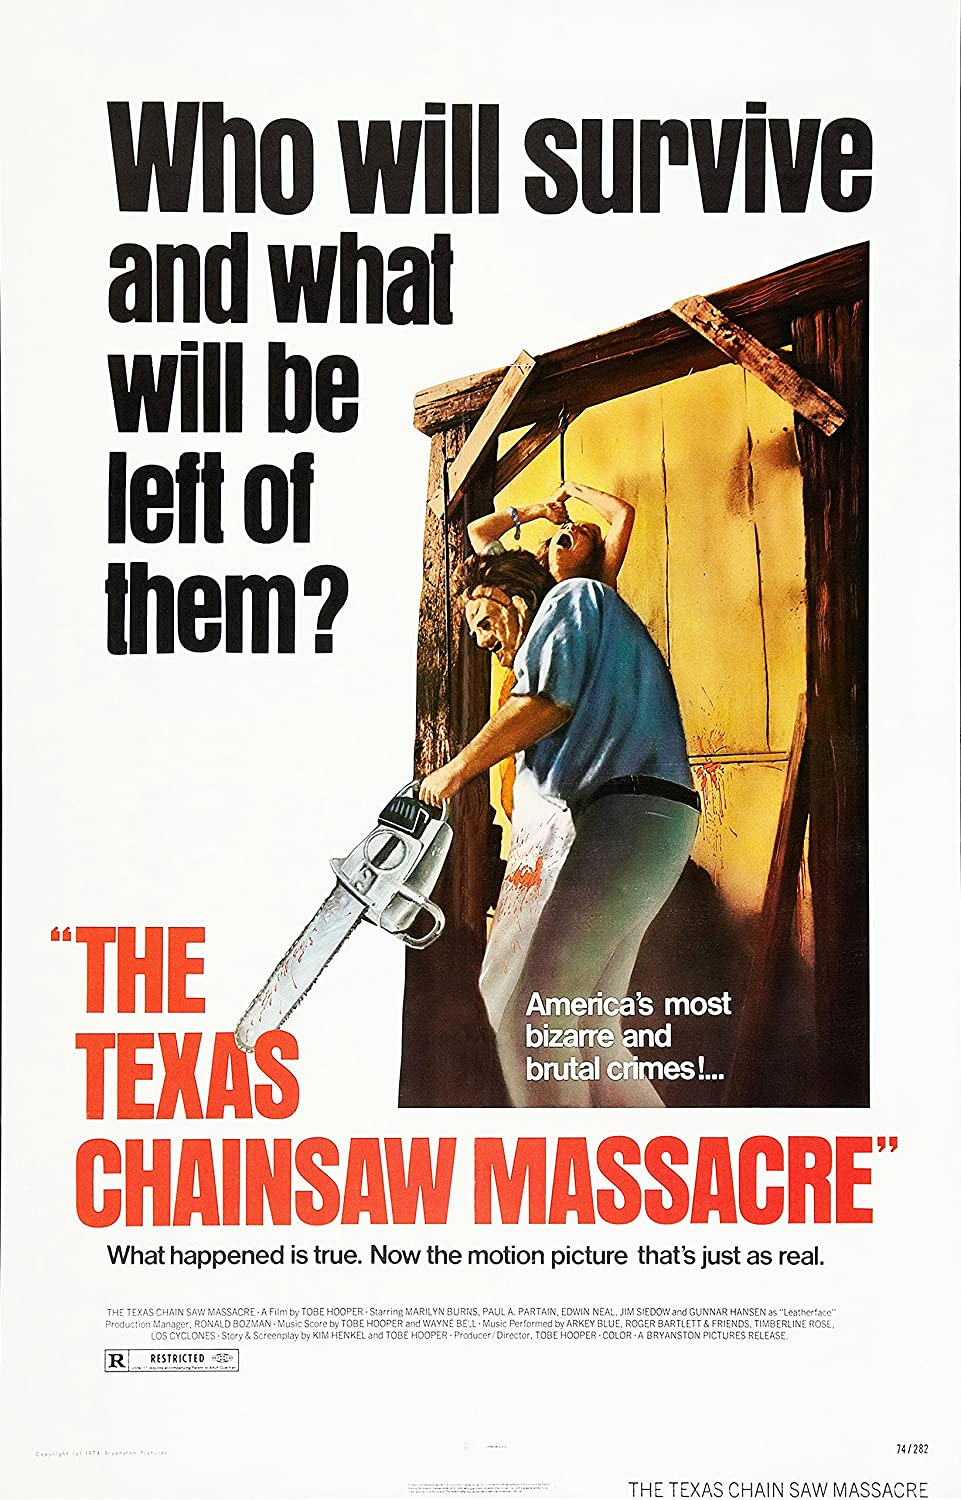 The Texas Chainsaw Massacre (1974) Movie Poster 24x36